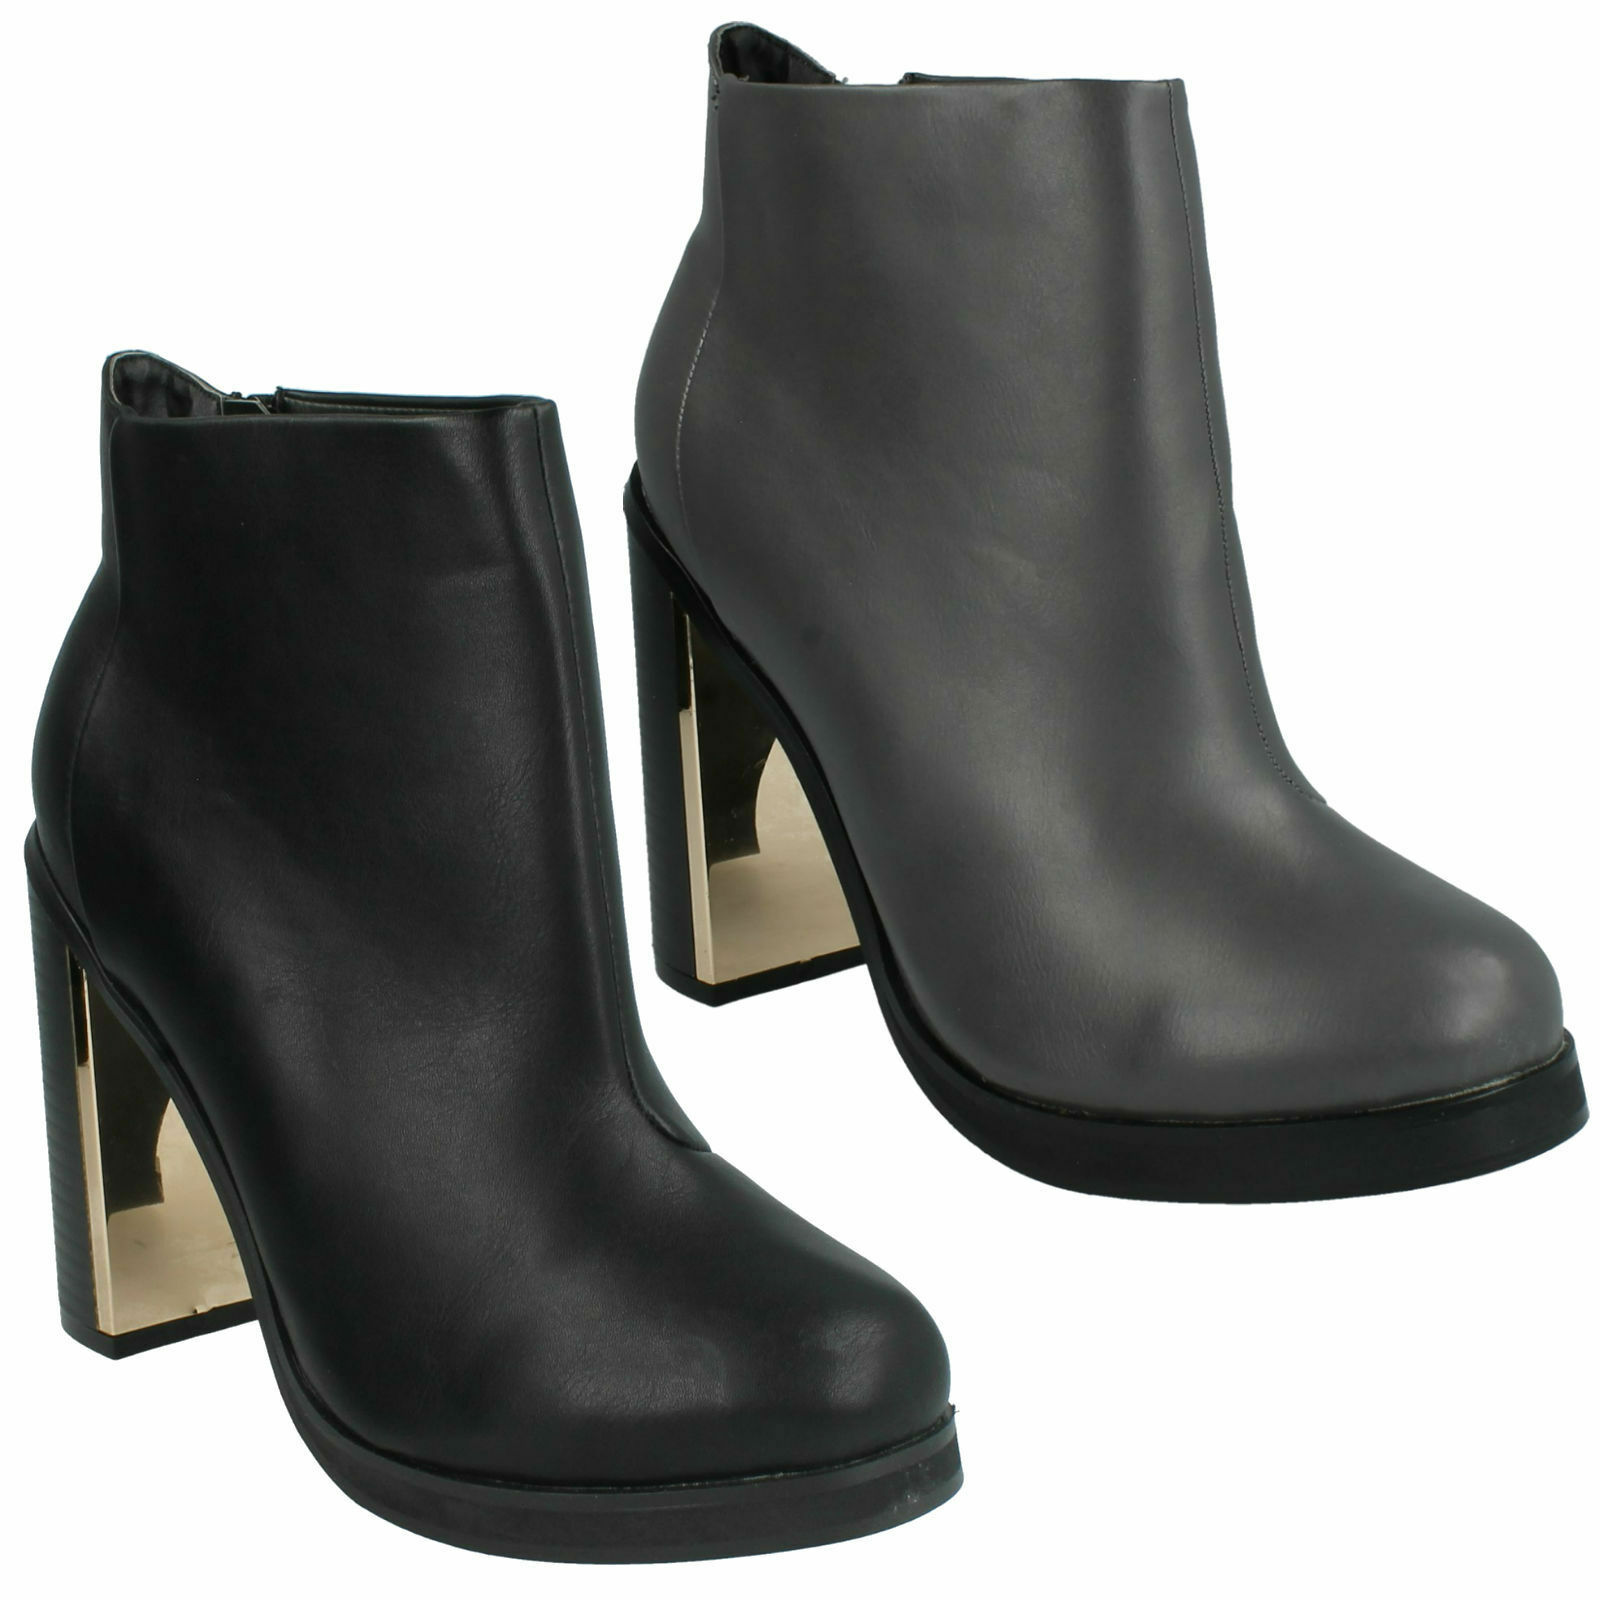 6efedef74fc6a F50428 LADIES SPOT ON HIGH HEEL ZIP UP SHOES CASUAL TROUSER ANKLE BOOTS SIZE